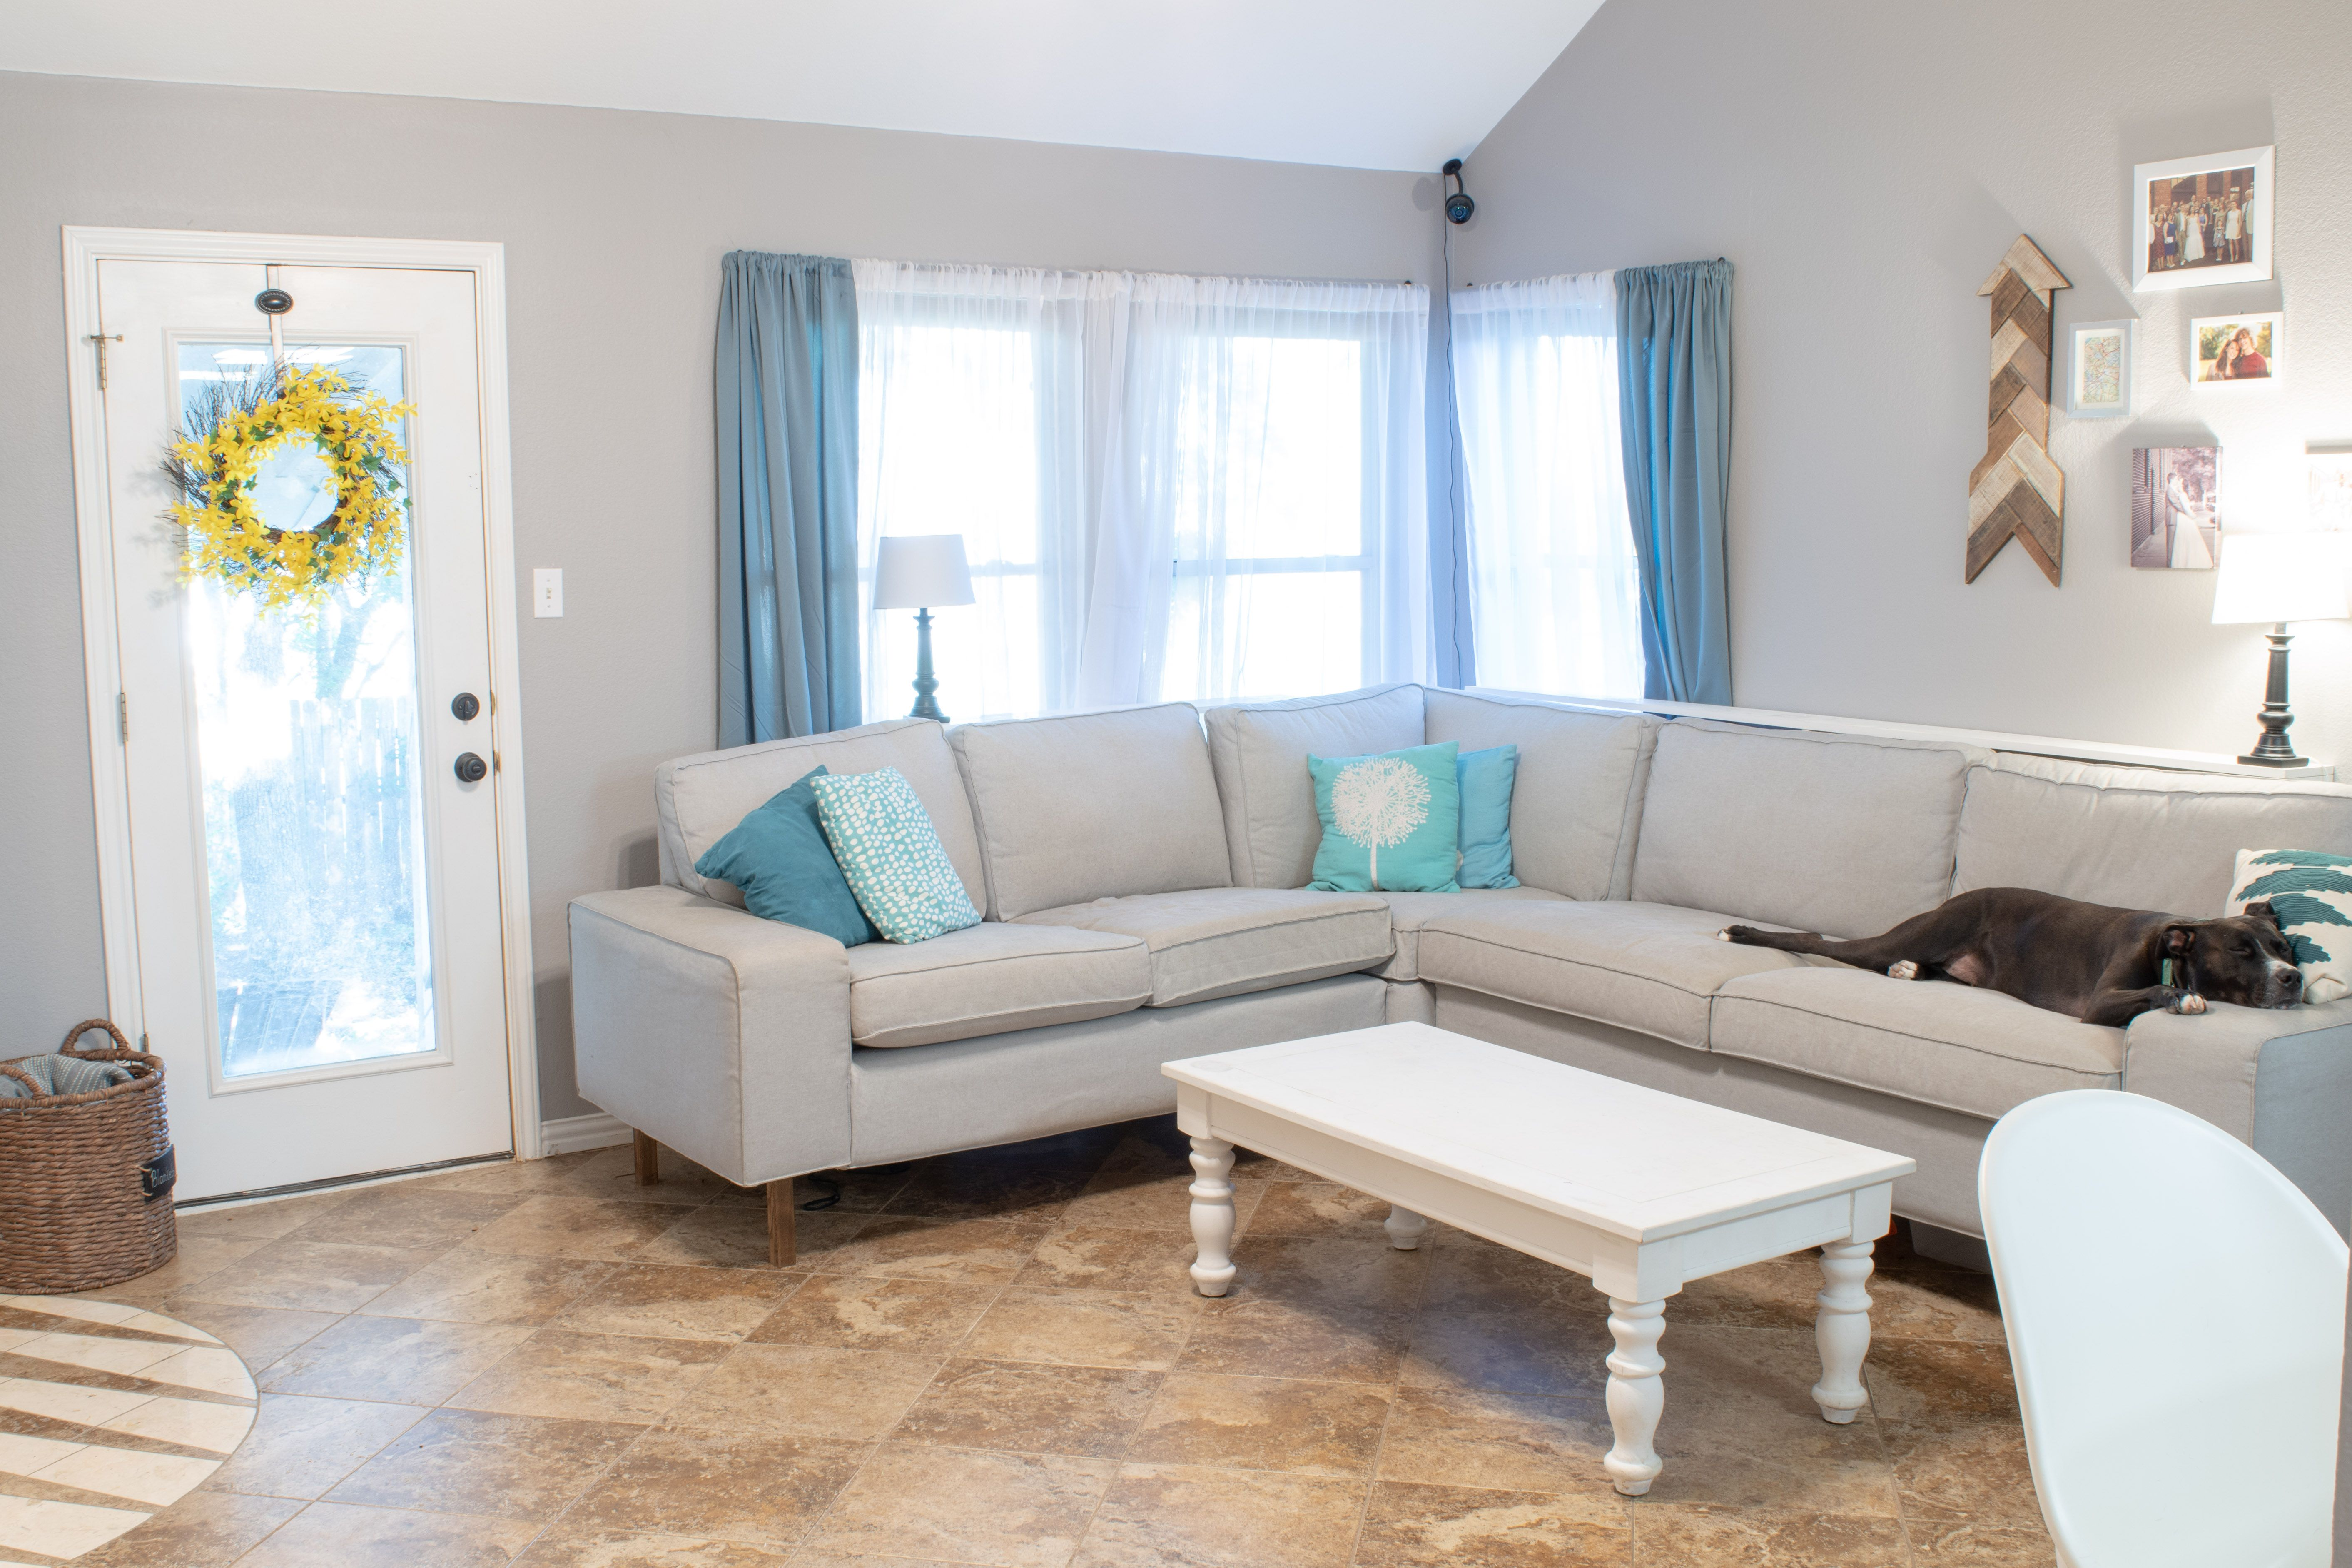 Adding Legs To An Ikea Sofa Diy Without Fear Ikea Sofa Trendy Living Rooms New Living Room